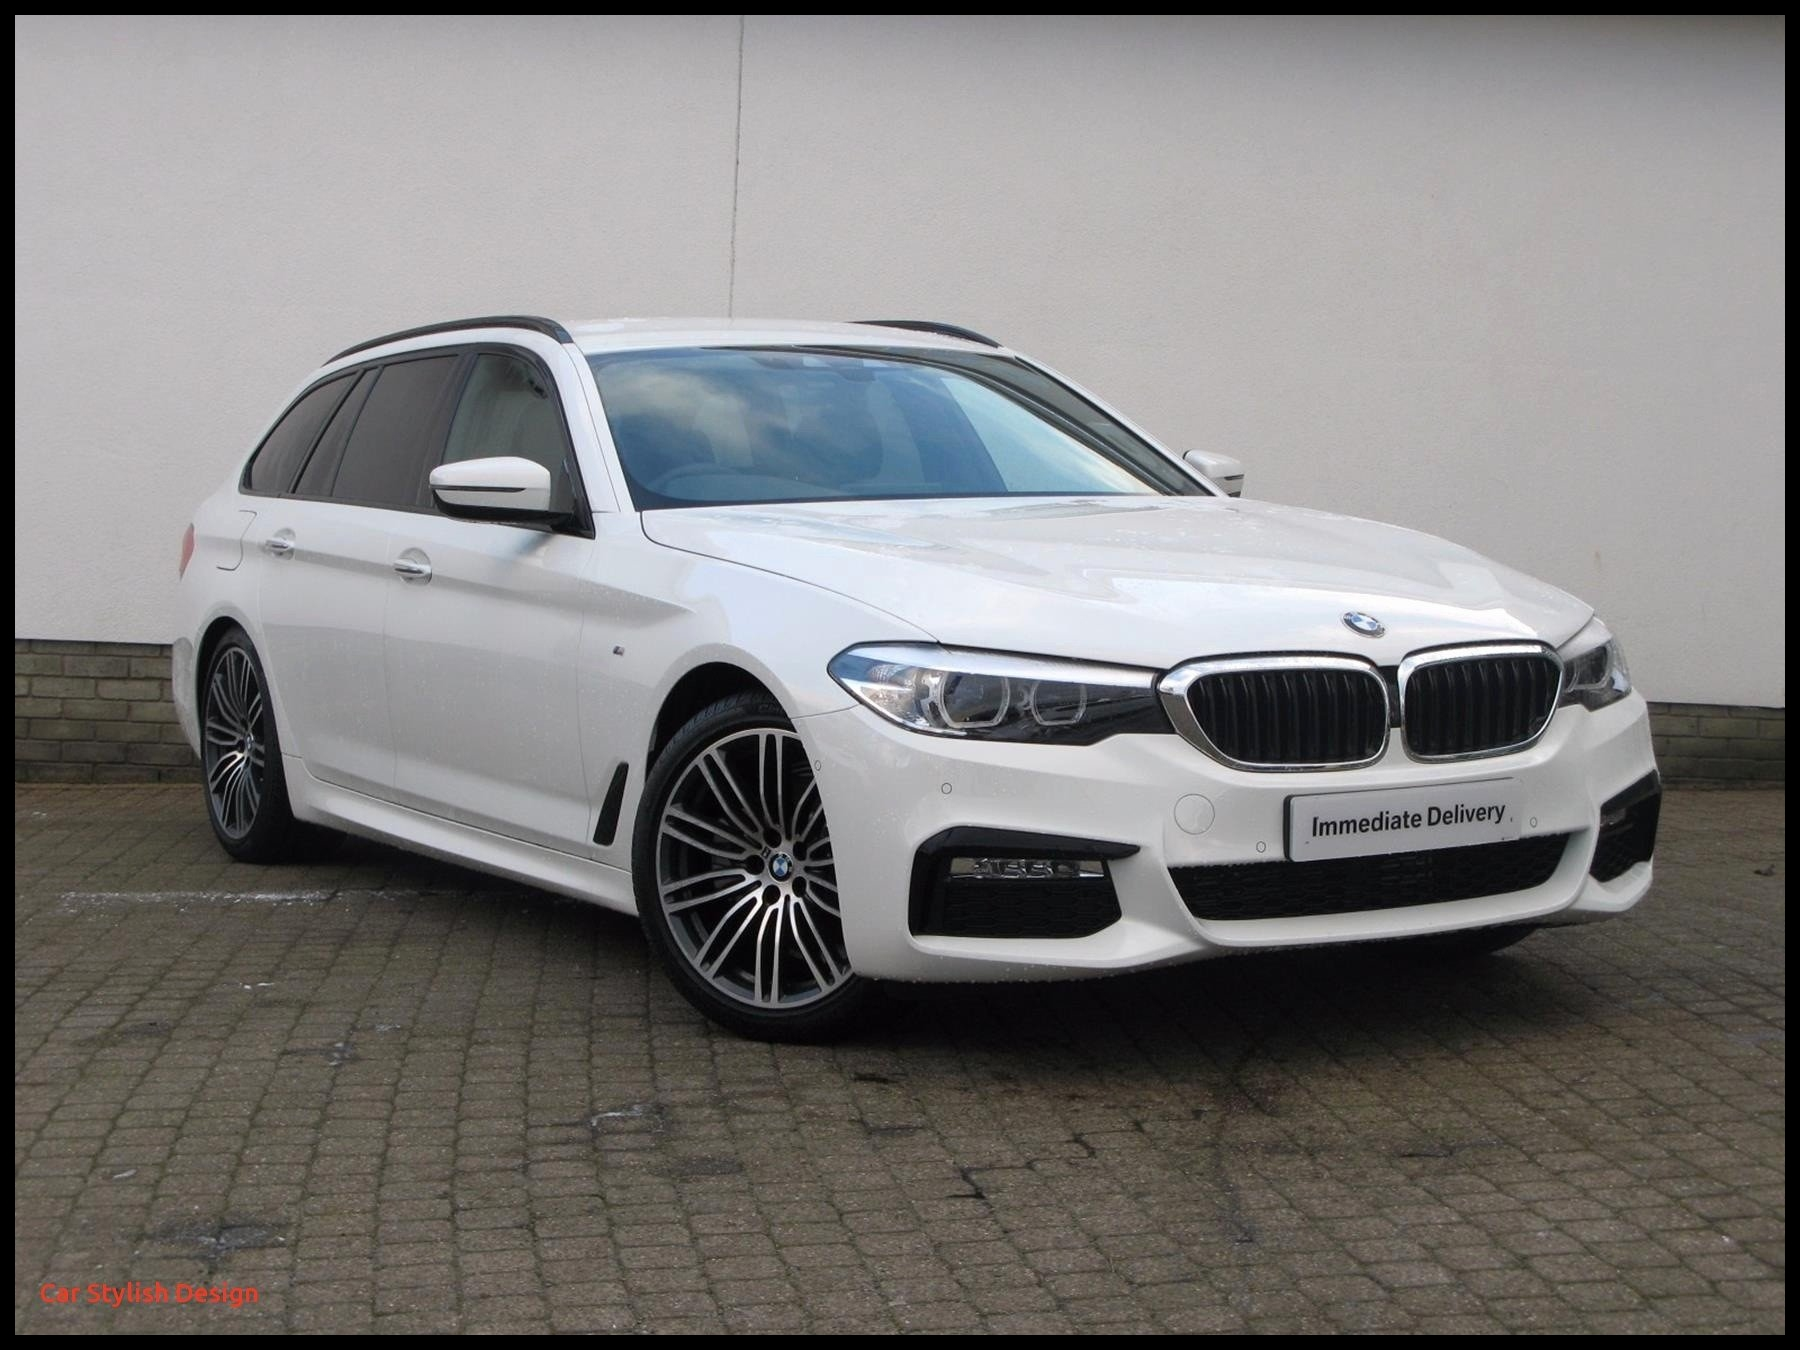 Bmw 320i 2017 New these are the Bmw Sports Car Models Mezzomotorsports